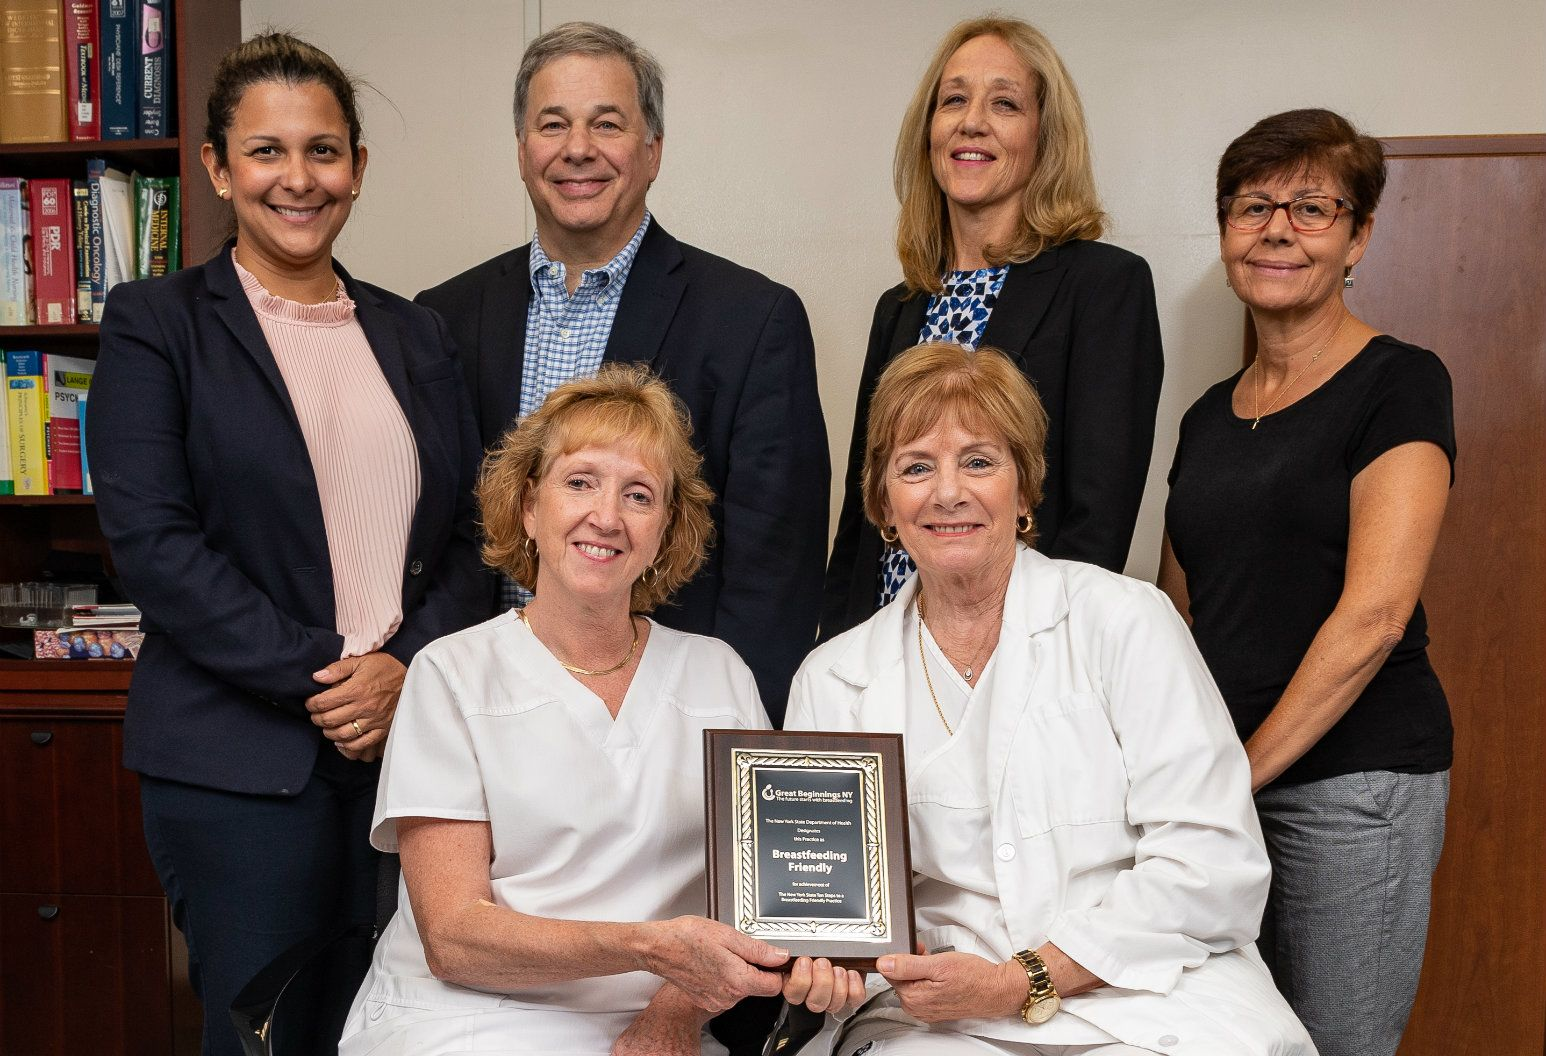 Mary Goussis, RN, and other staff hold a plaque designating Glen Cove Family Medicine as a breastfeeding friendly facility.